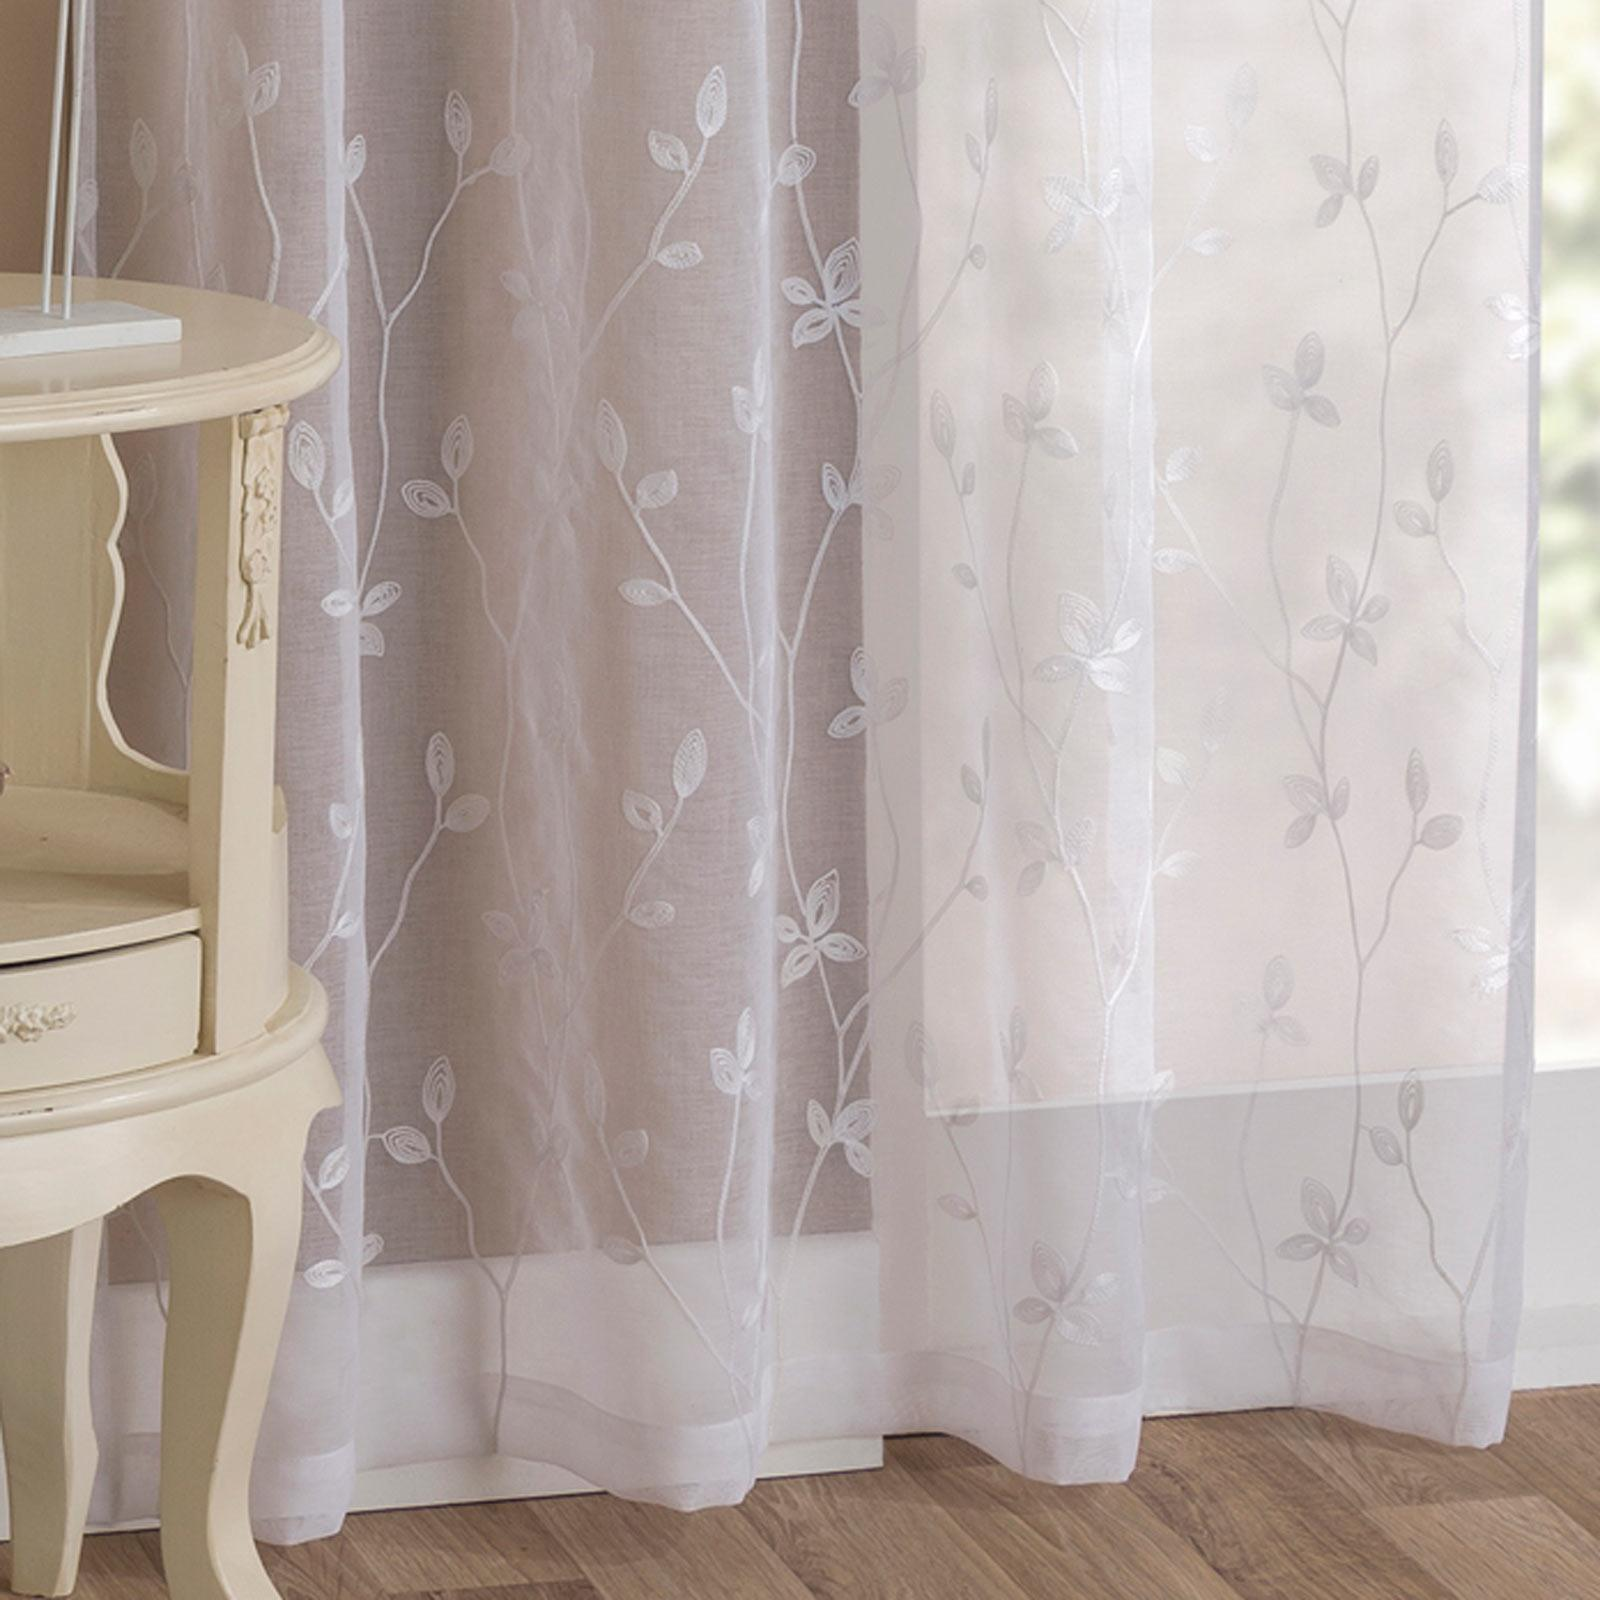 White Voile Curtain Floral Embroidered Slot Top Panels Rod Pocket Sheer Voiles Ebay